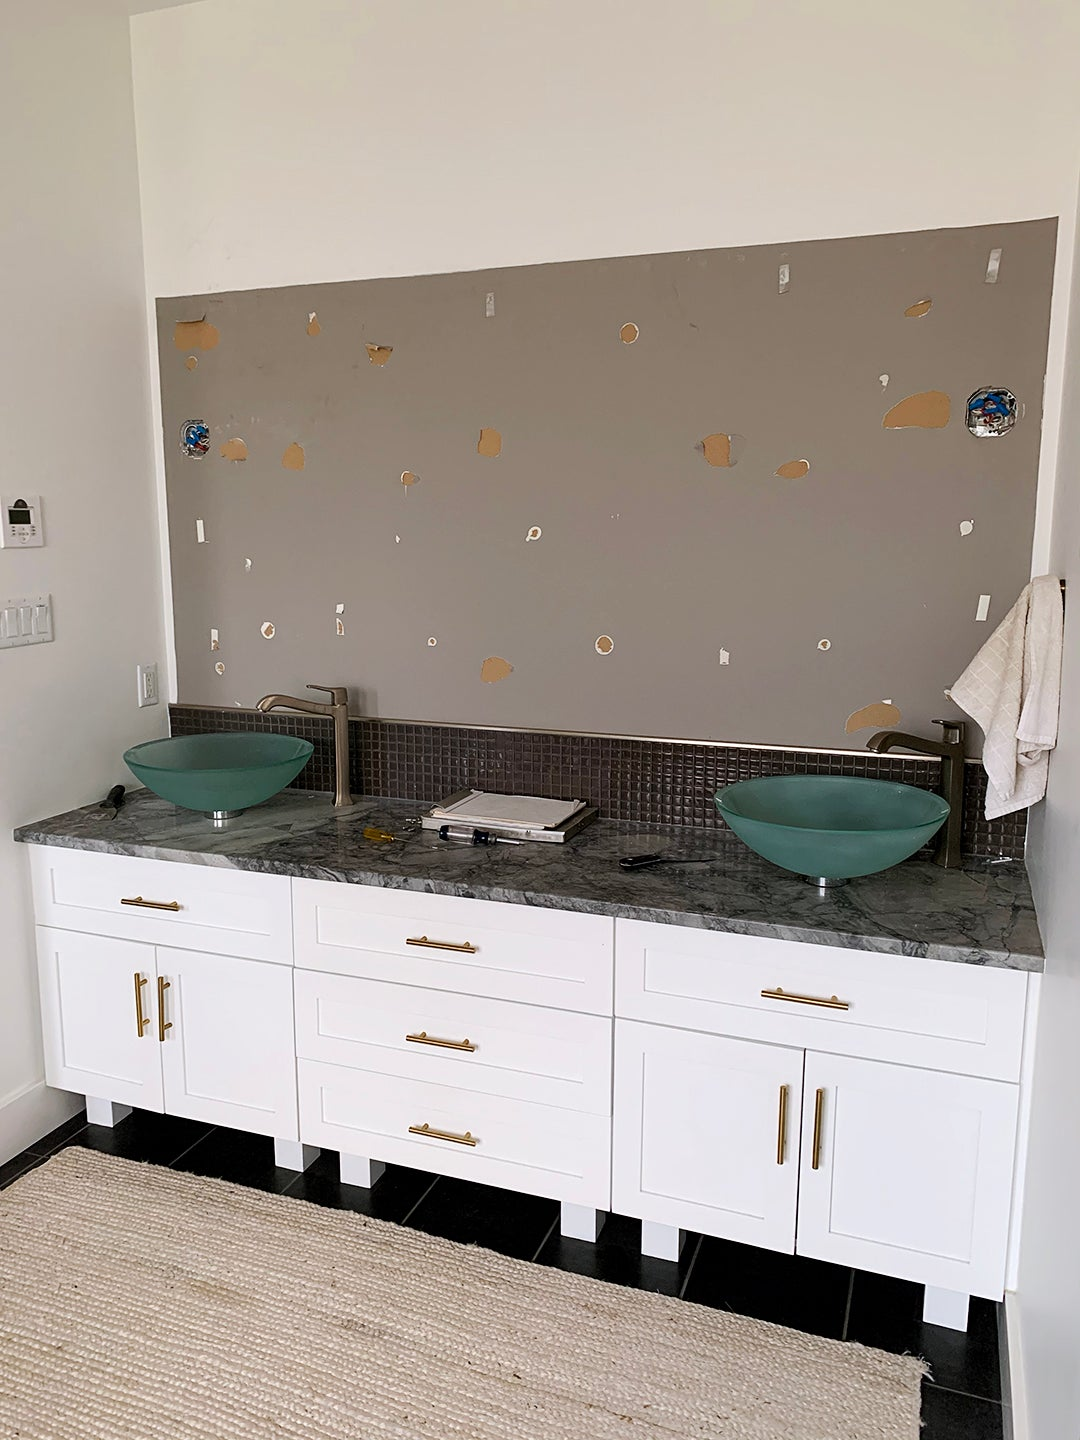 exposed drywall and blue sinks